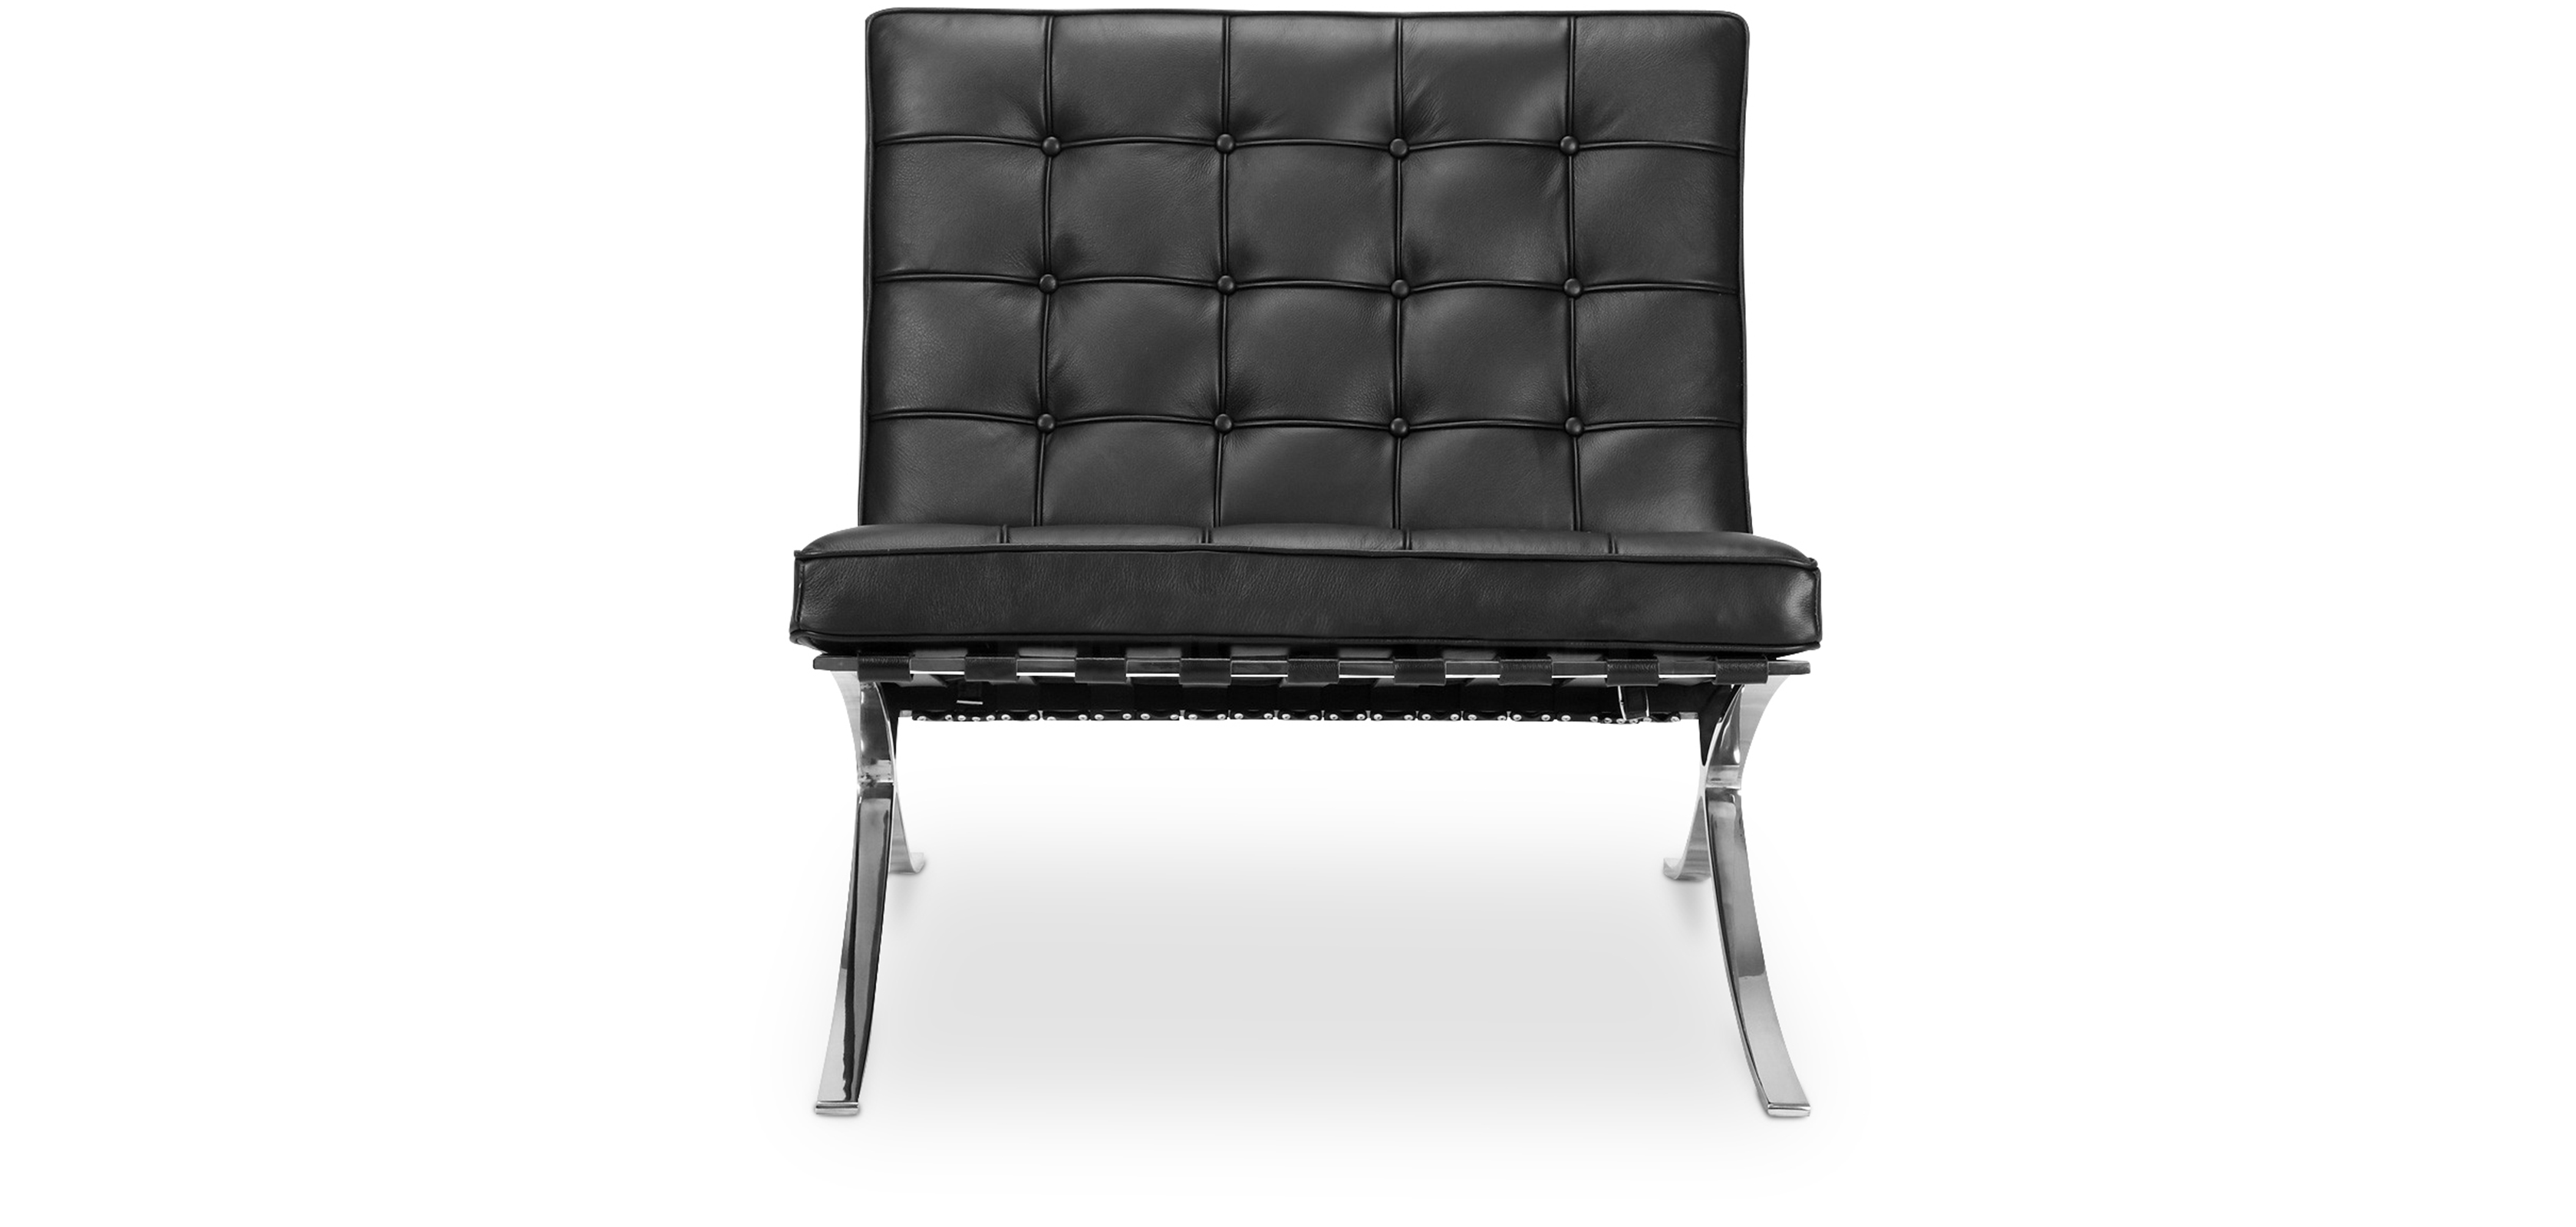 fauteuil barcelona ottoman ludwig mies van der rohe. Black Bedroom Furniture Sets. Home Design Ideas